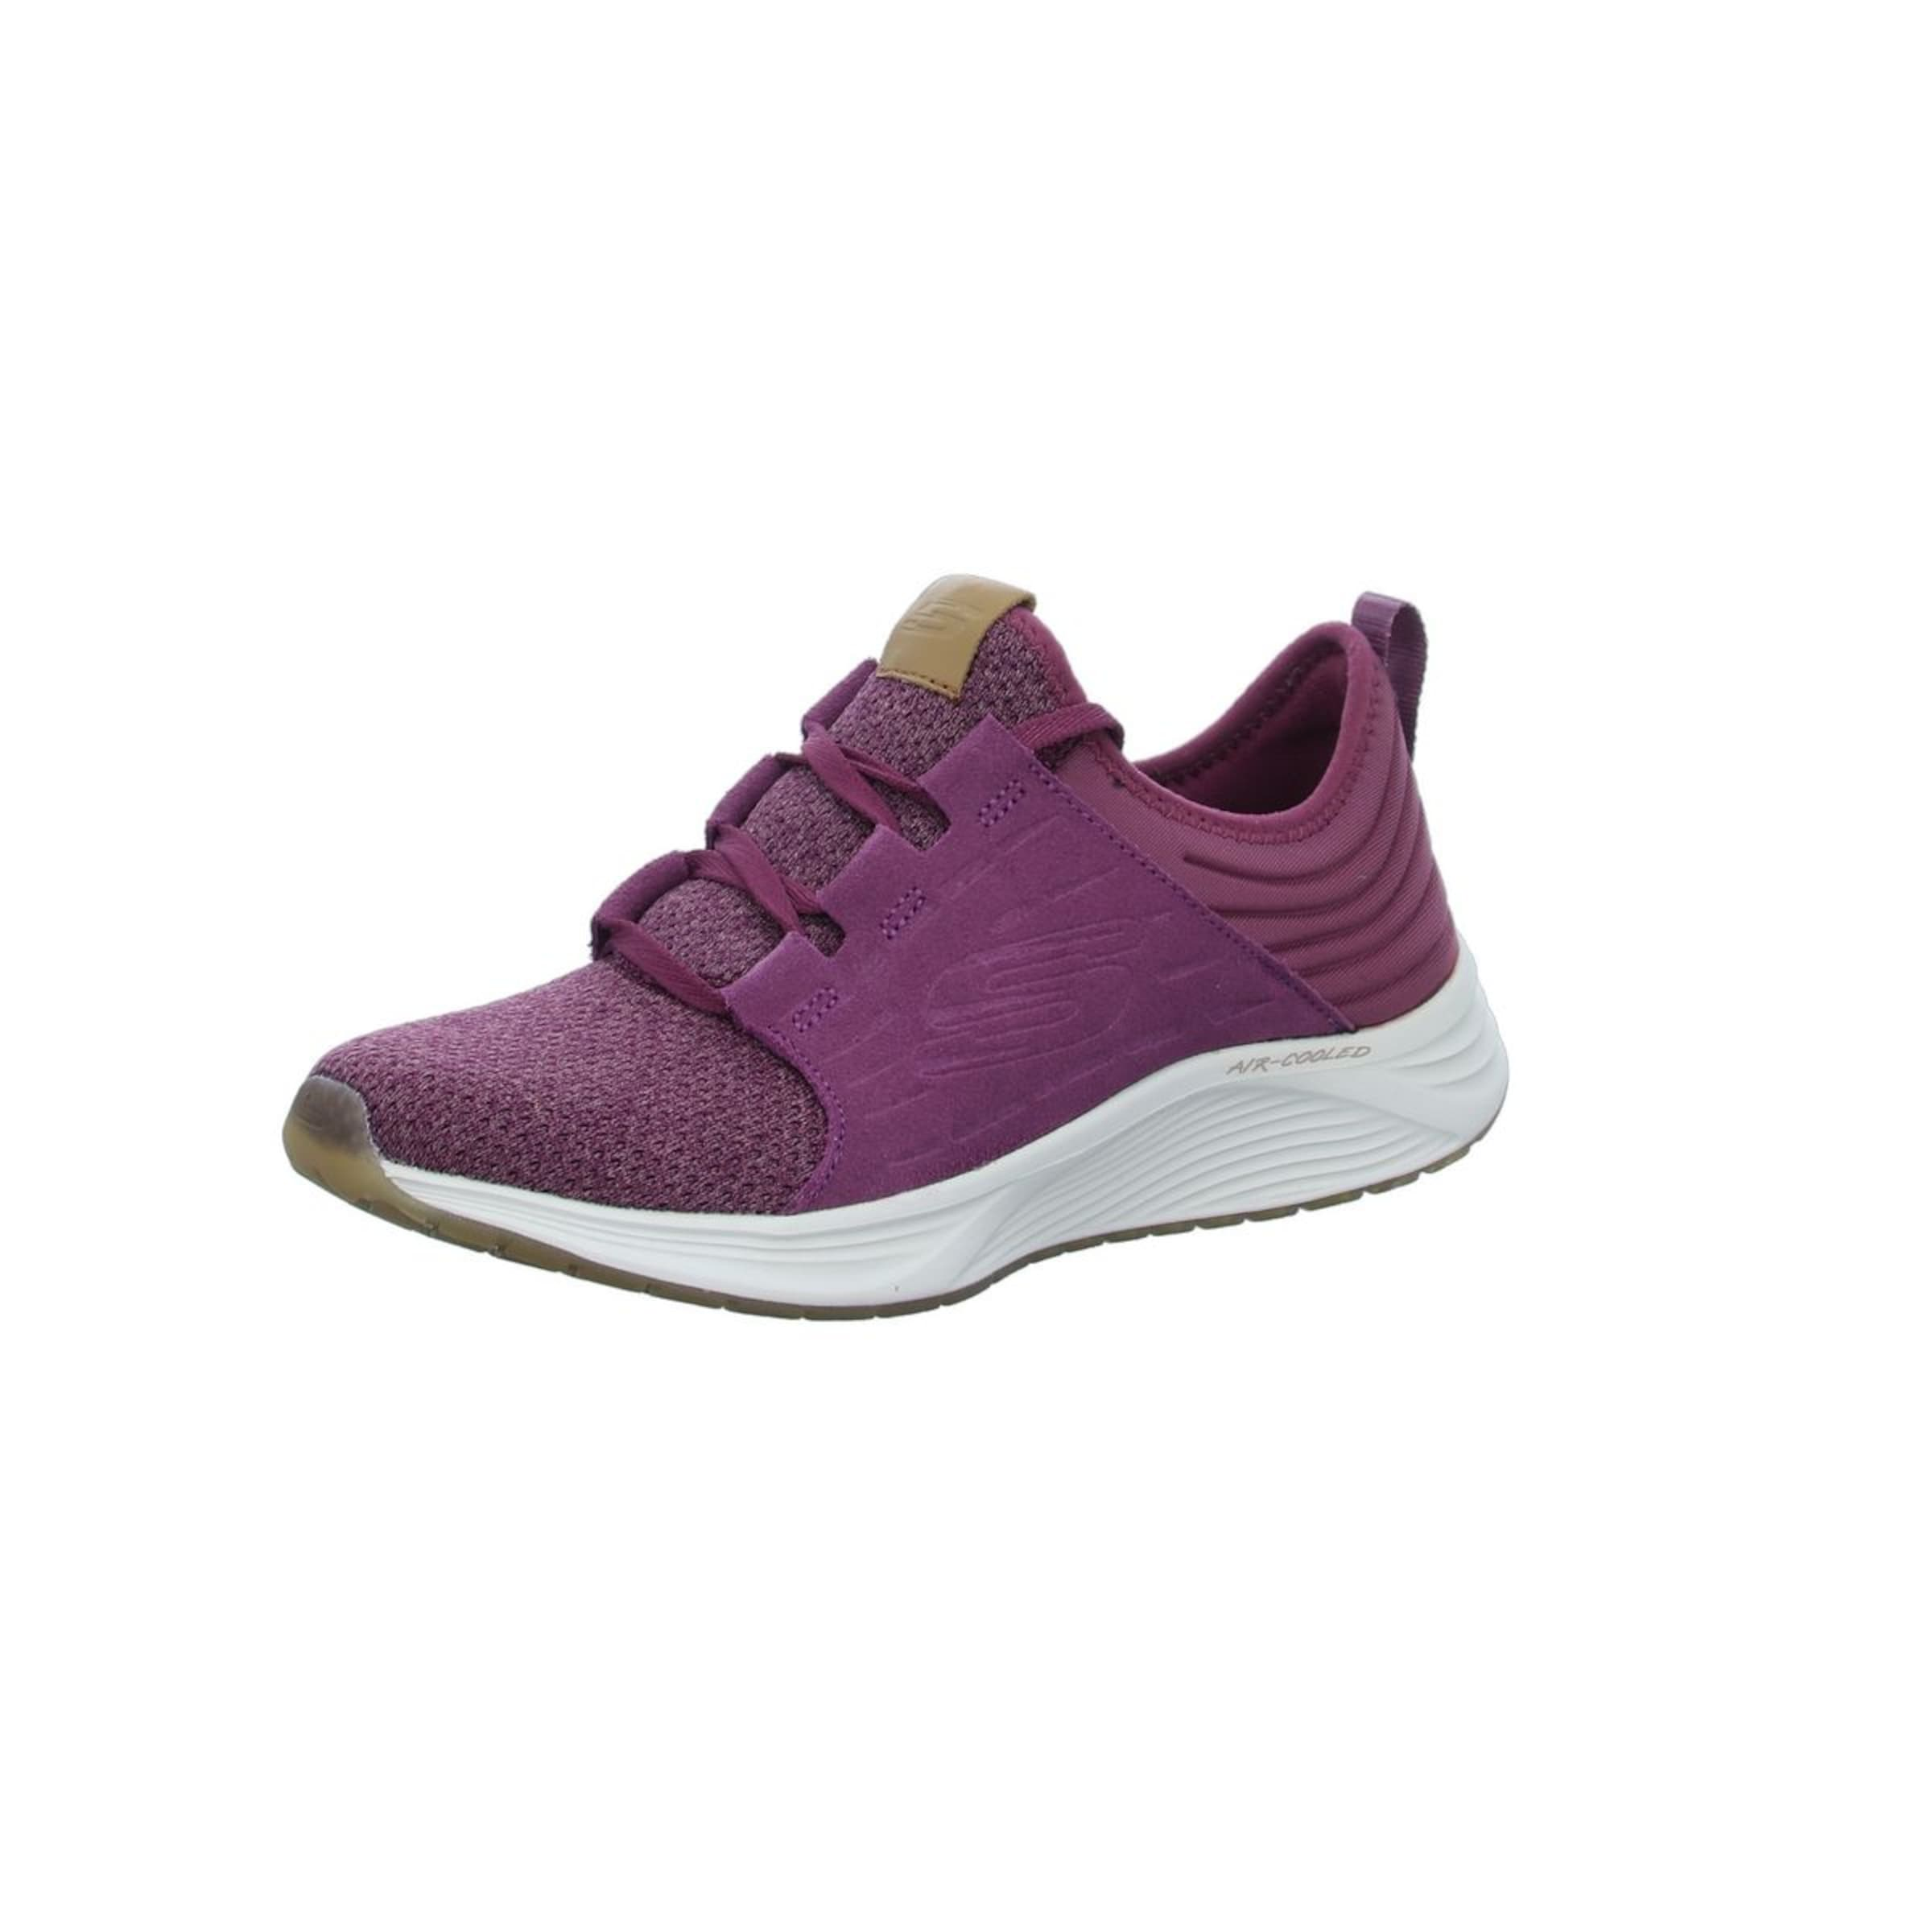 skyline' Laag Skechers Mw8pyvo0nn Bourgogne Sneakers In